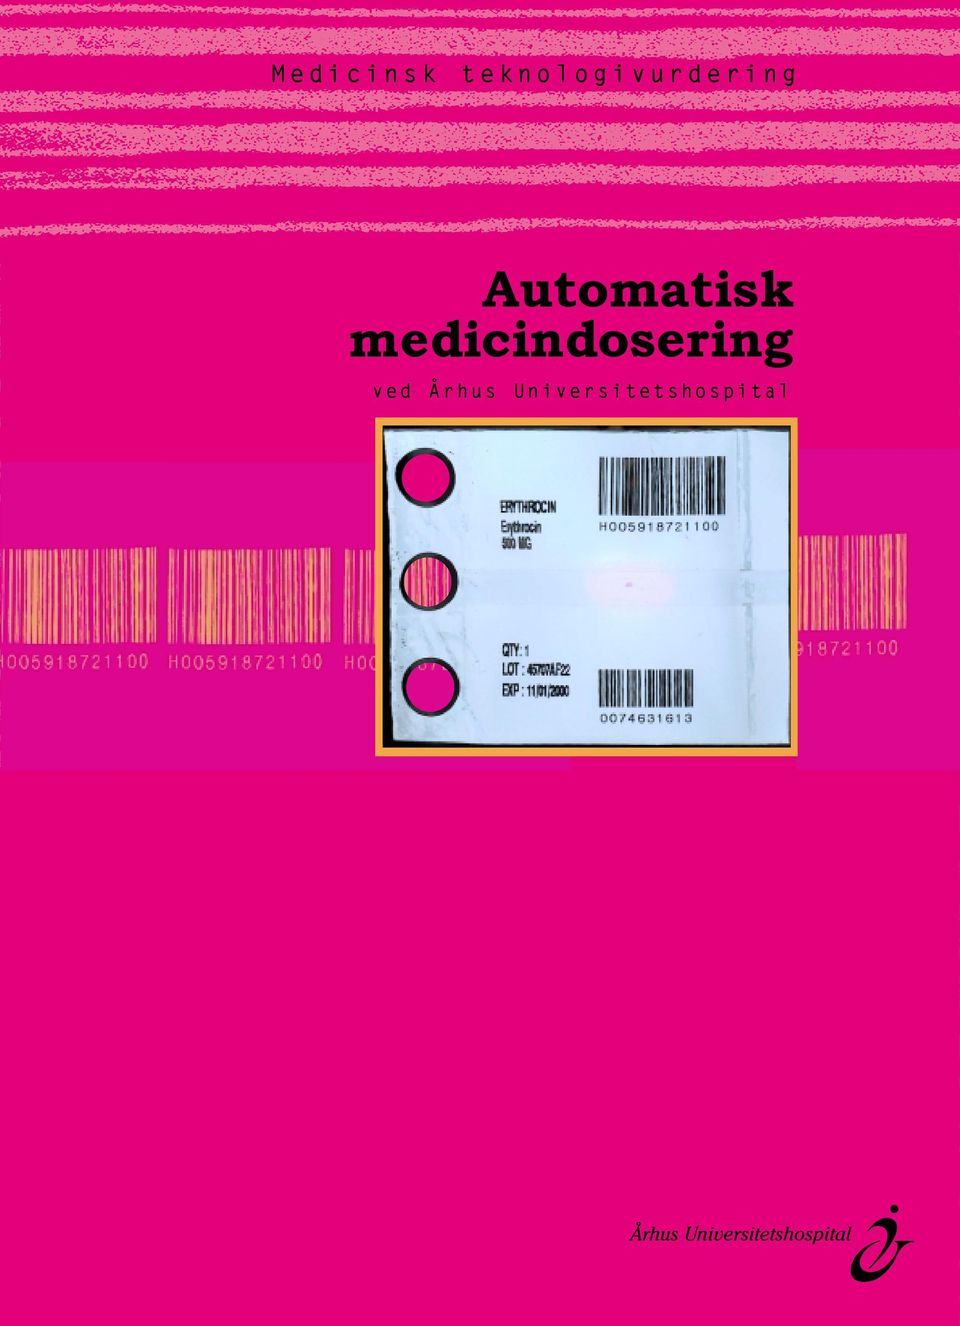 Automatisk